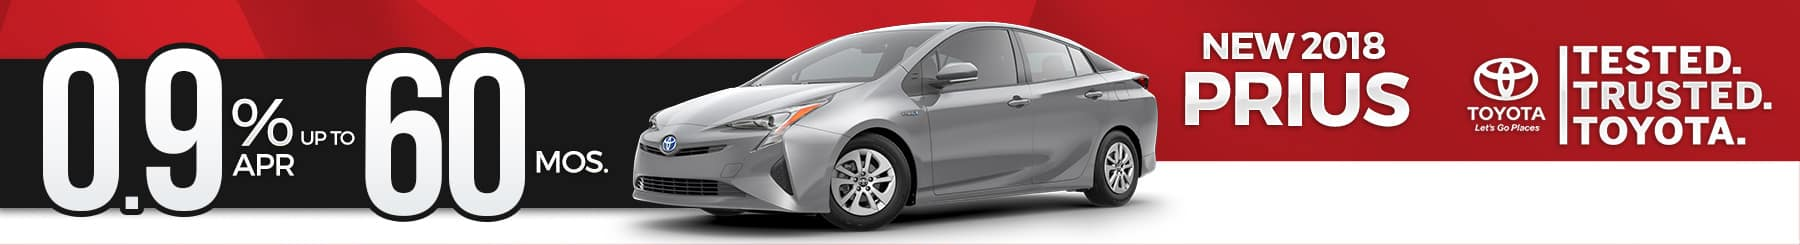 Toyota-Prius-Finance-Special